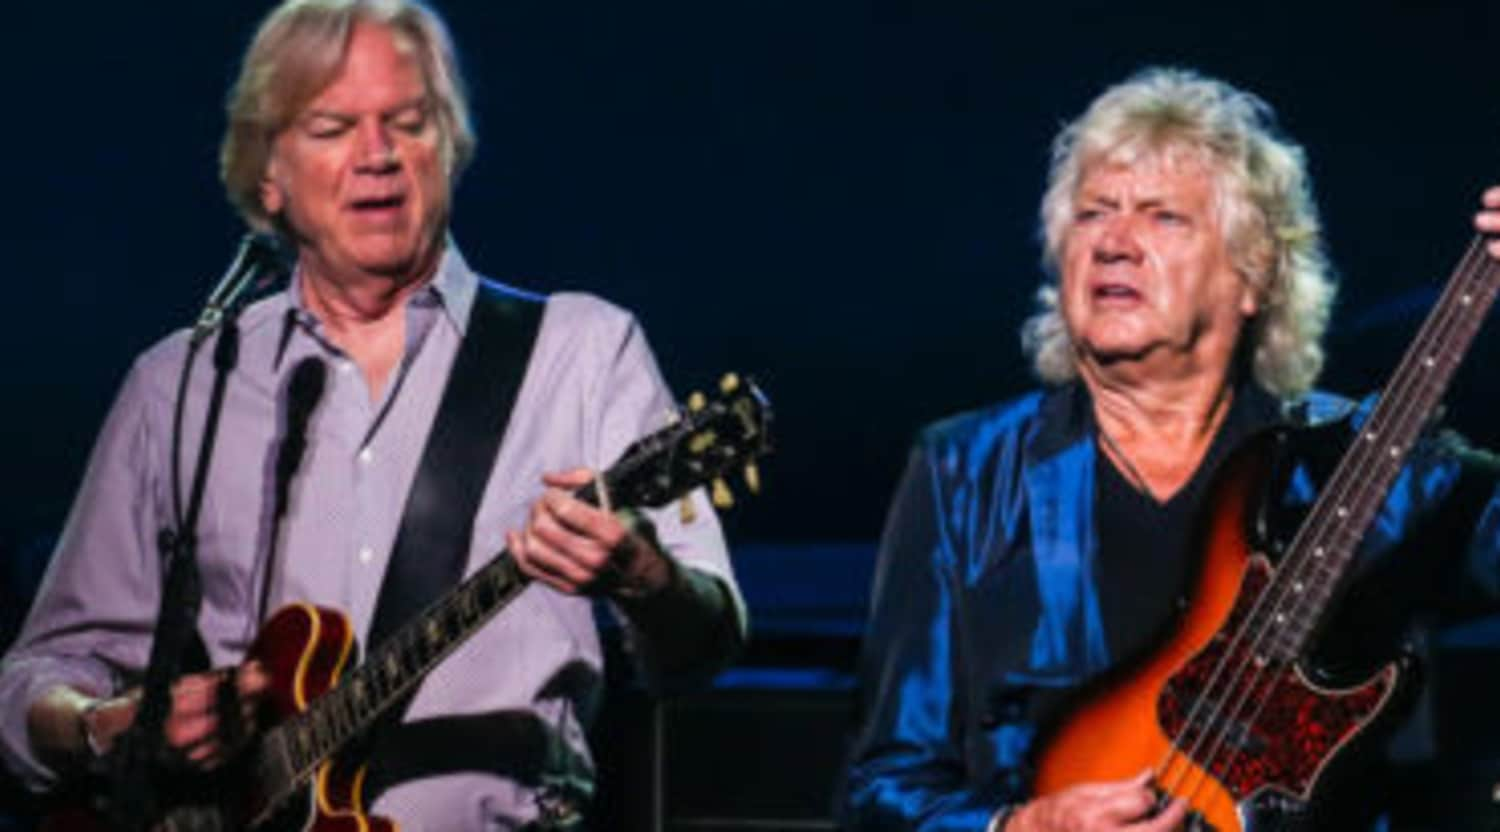 Moody Blues Tour 2020.Moody Blues Tickets Moody Blues Concert Tickets And Tour